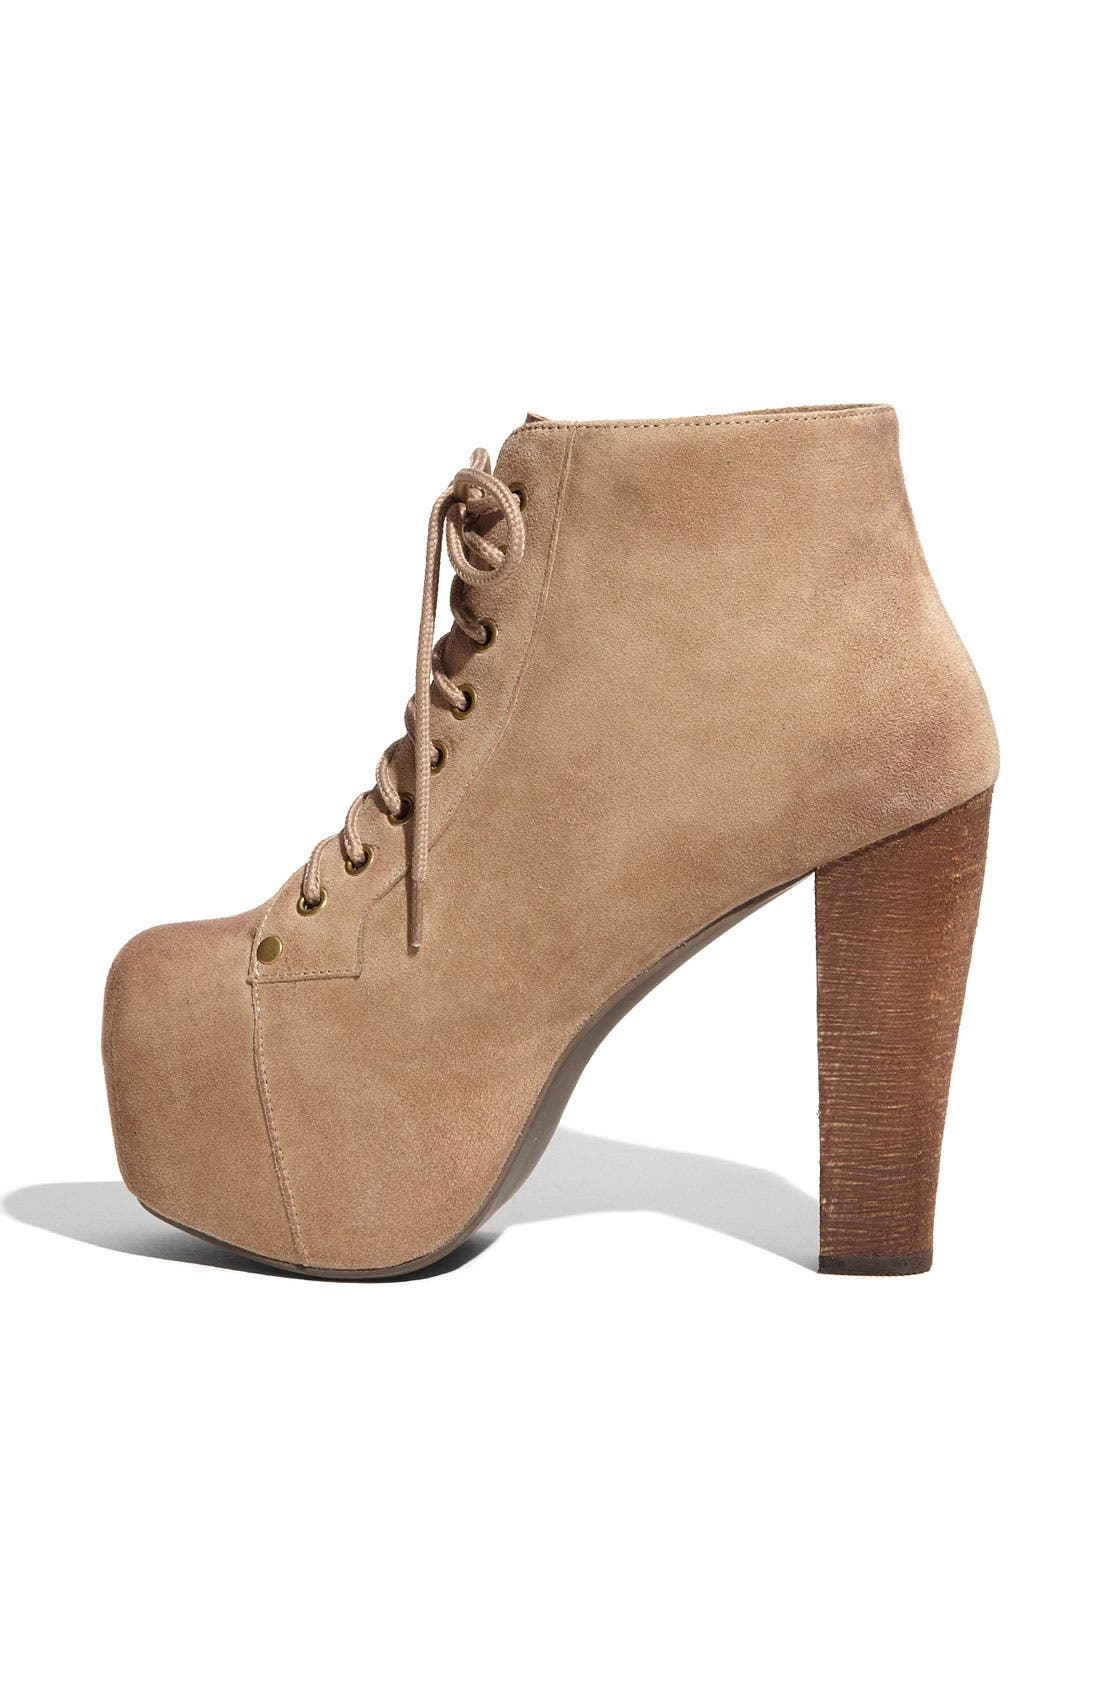 Alternate Image 2  - Jeffrey Campbell 'Lita' Suede Bootie (Women)